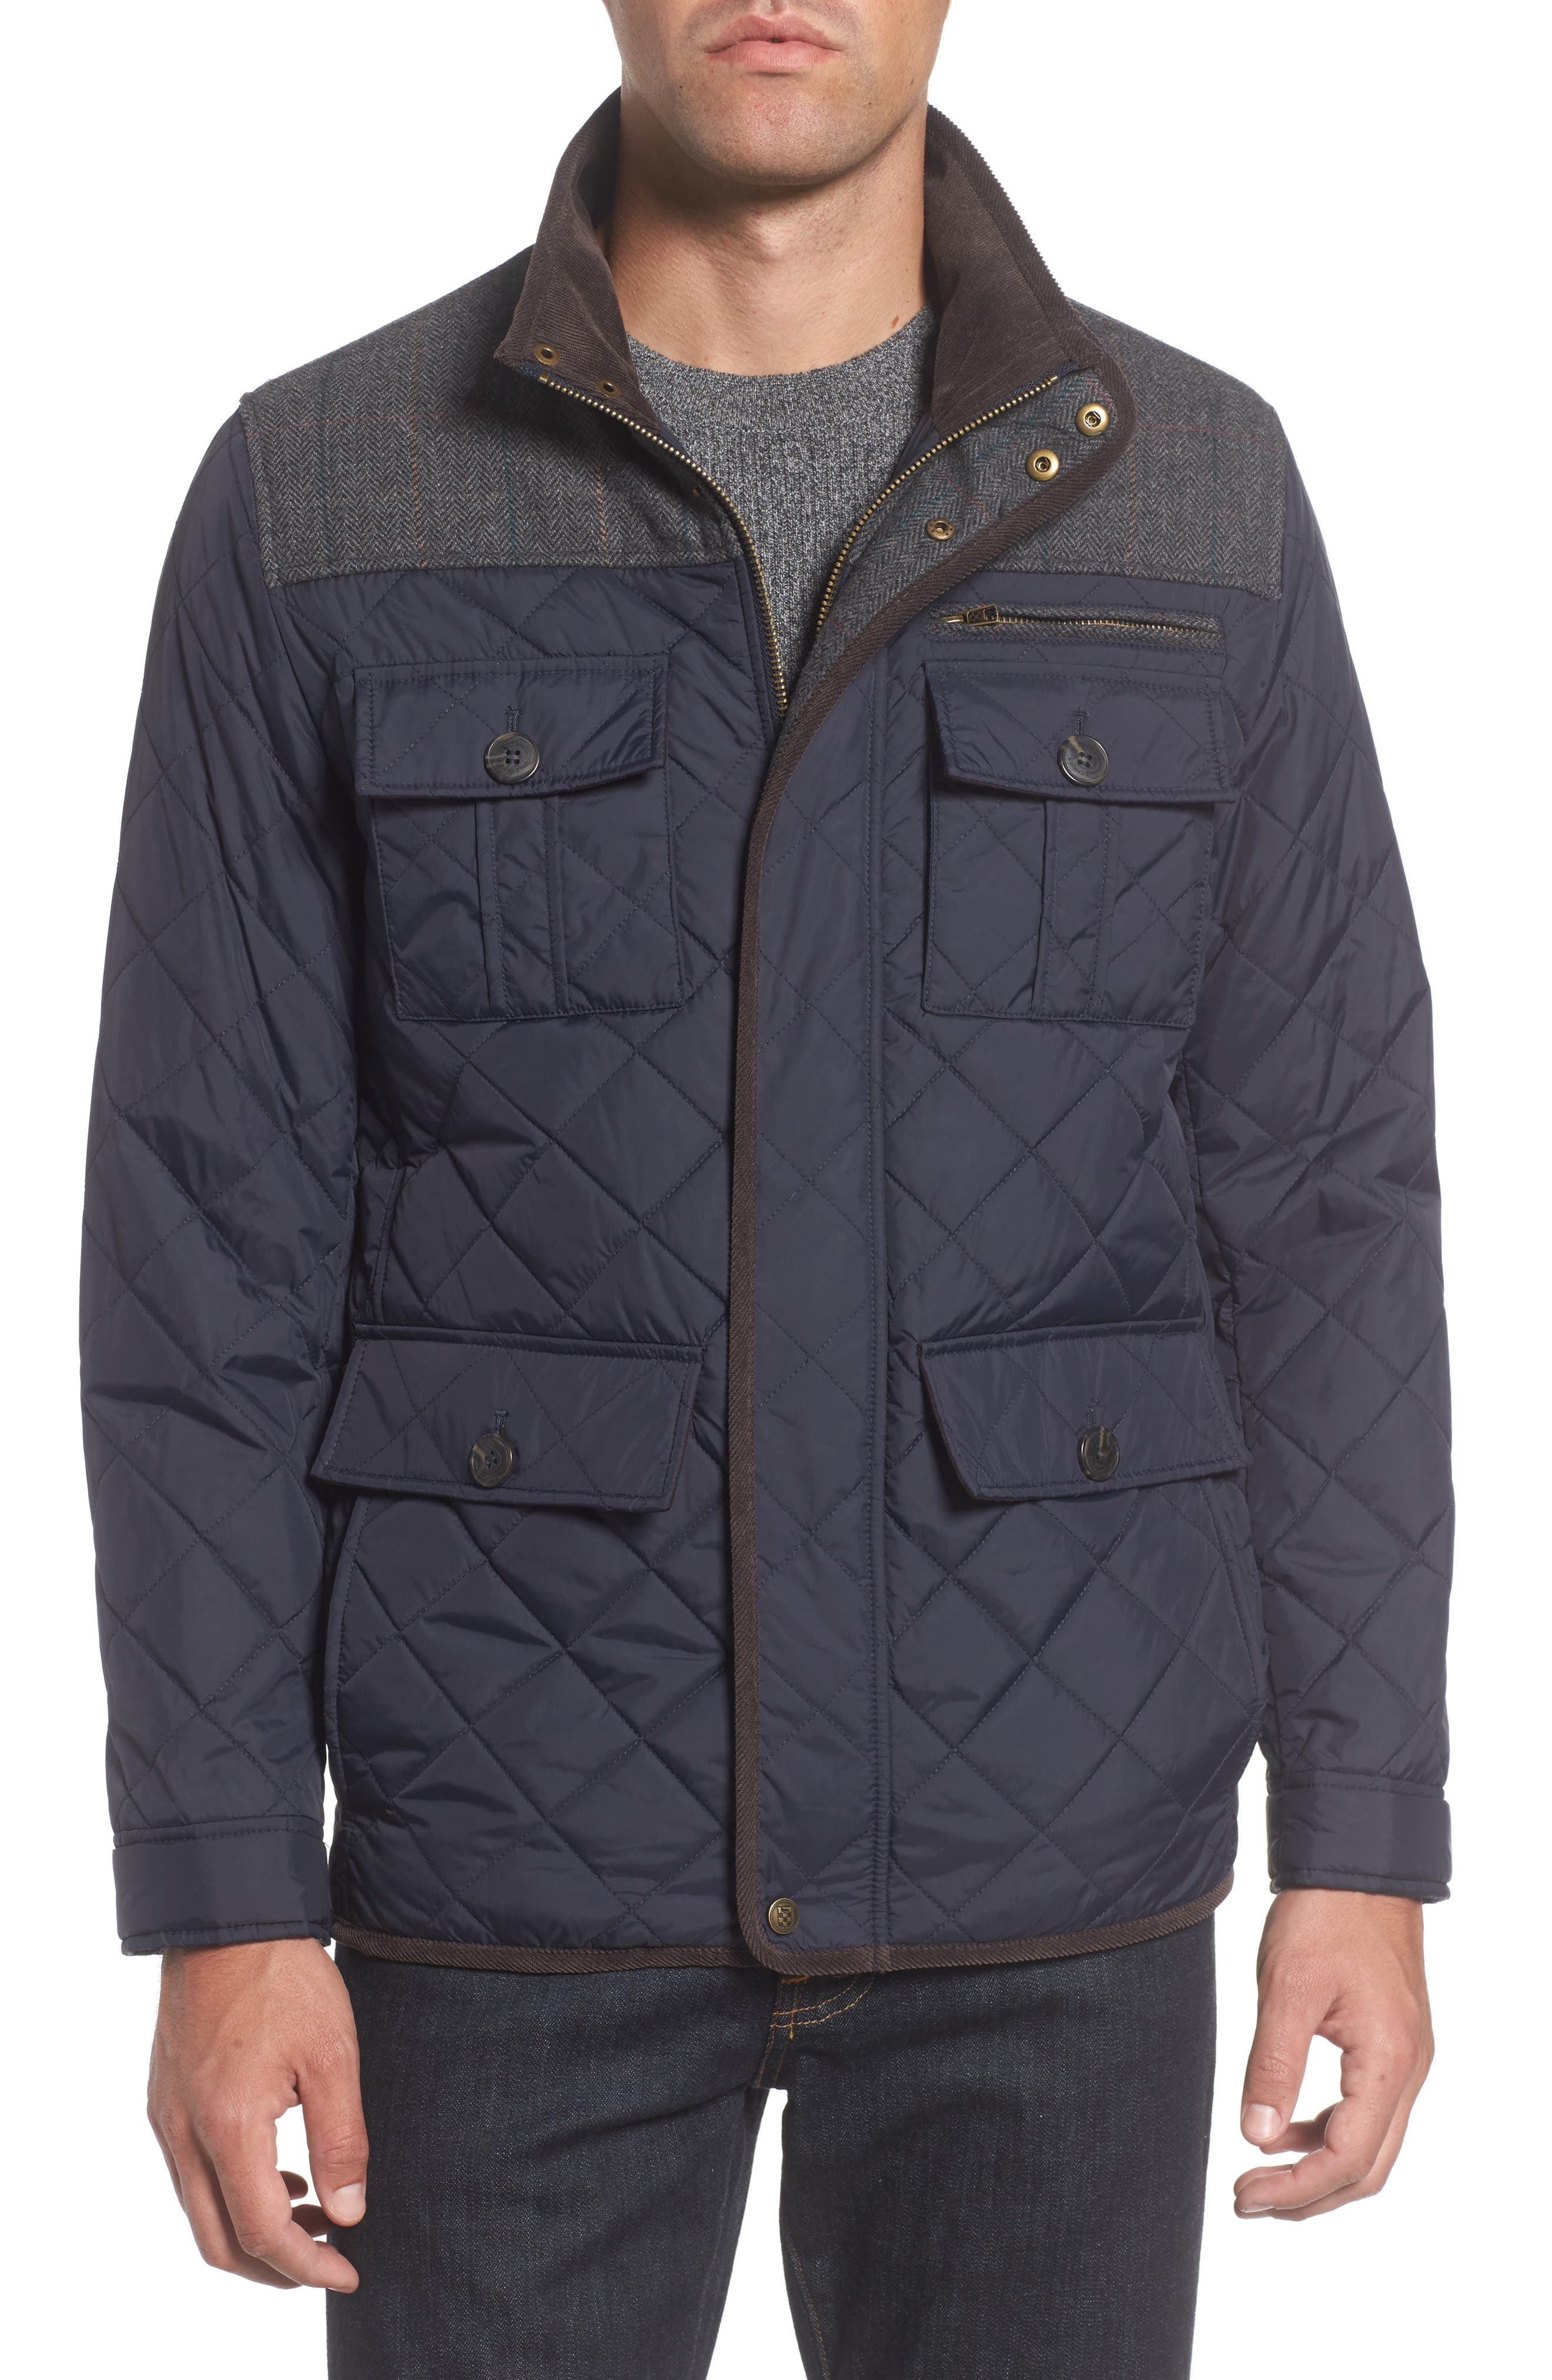 VINCE CAMUTO, Diamond Quilted Full Zip Jacket, Alternate thumbnail 6, color, NAVY